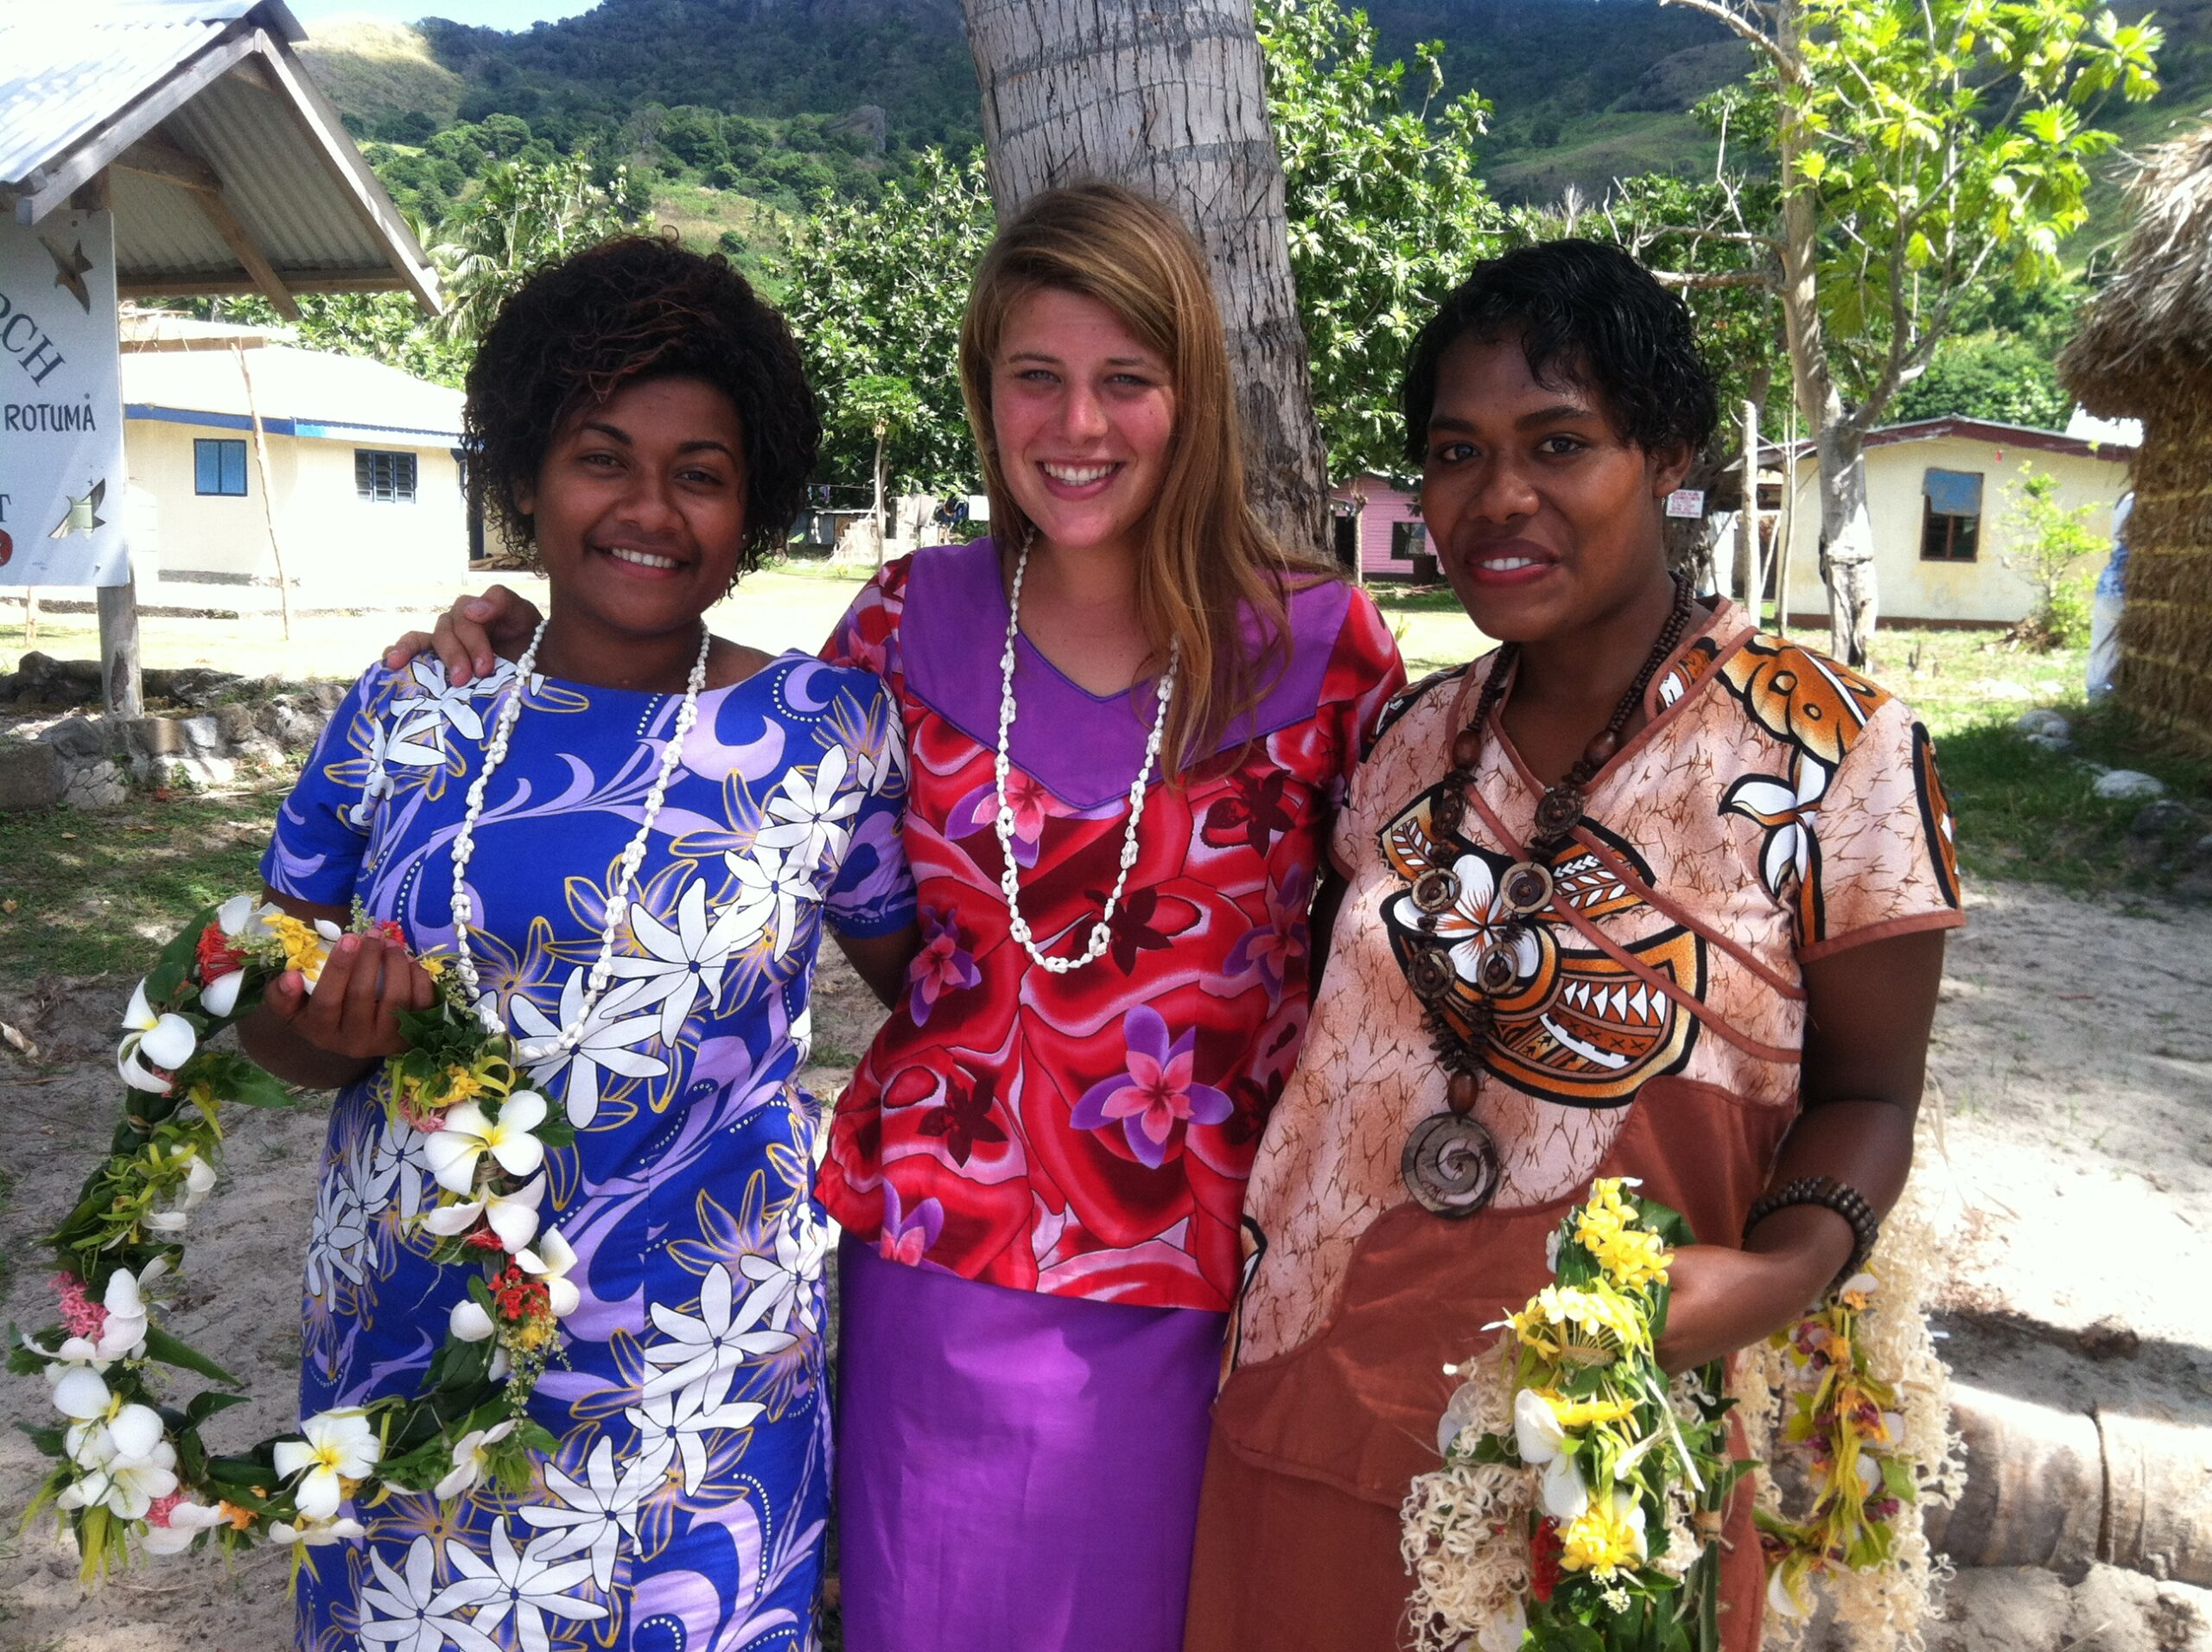 Kline spent 27 months in Fiji as a Peace Corps volunteer. Image credit: Peace Corps Students